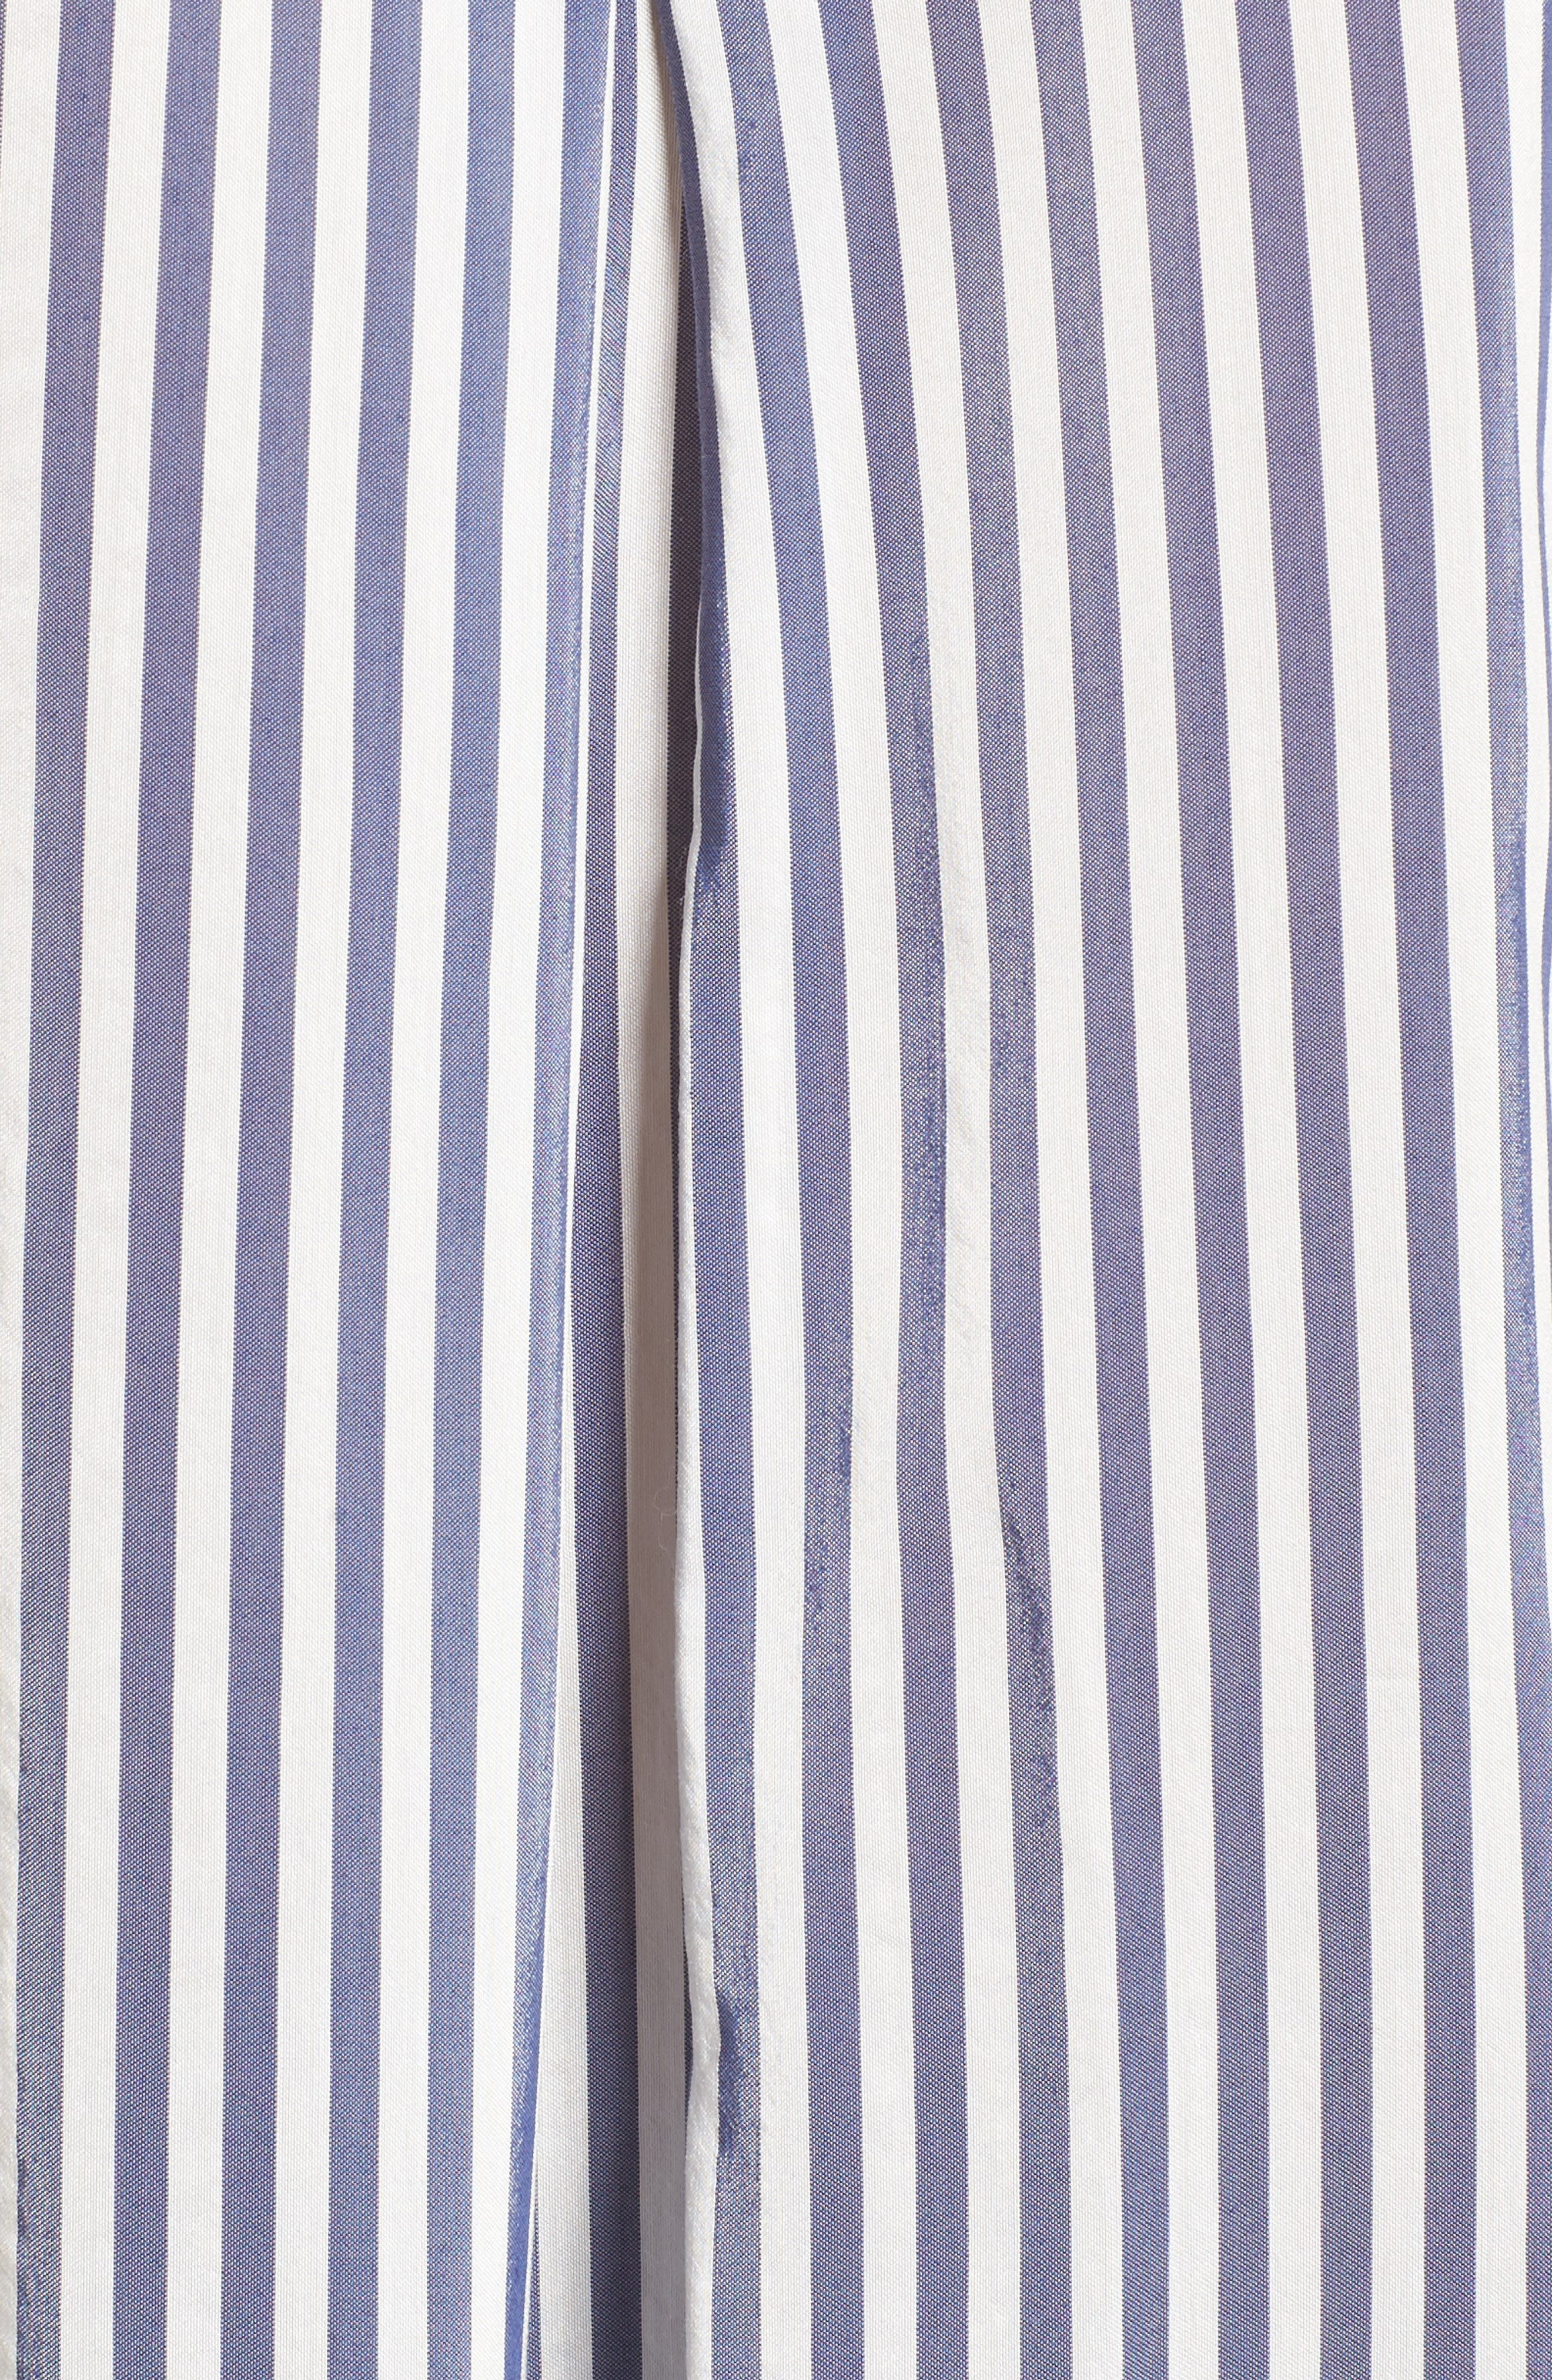 Stripe Shirt,                             Alternate thumbnail 5, color,                             Navy Evening Lucca Stripe